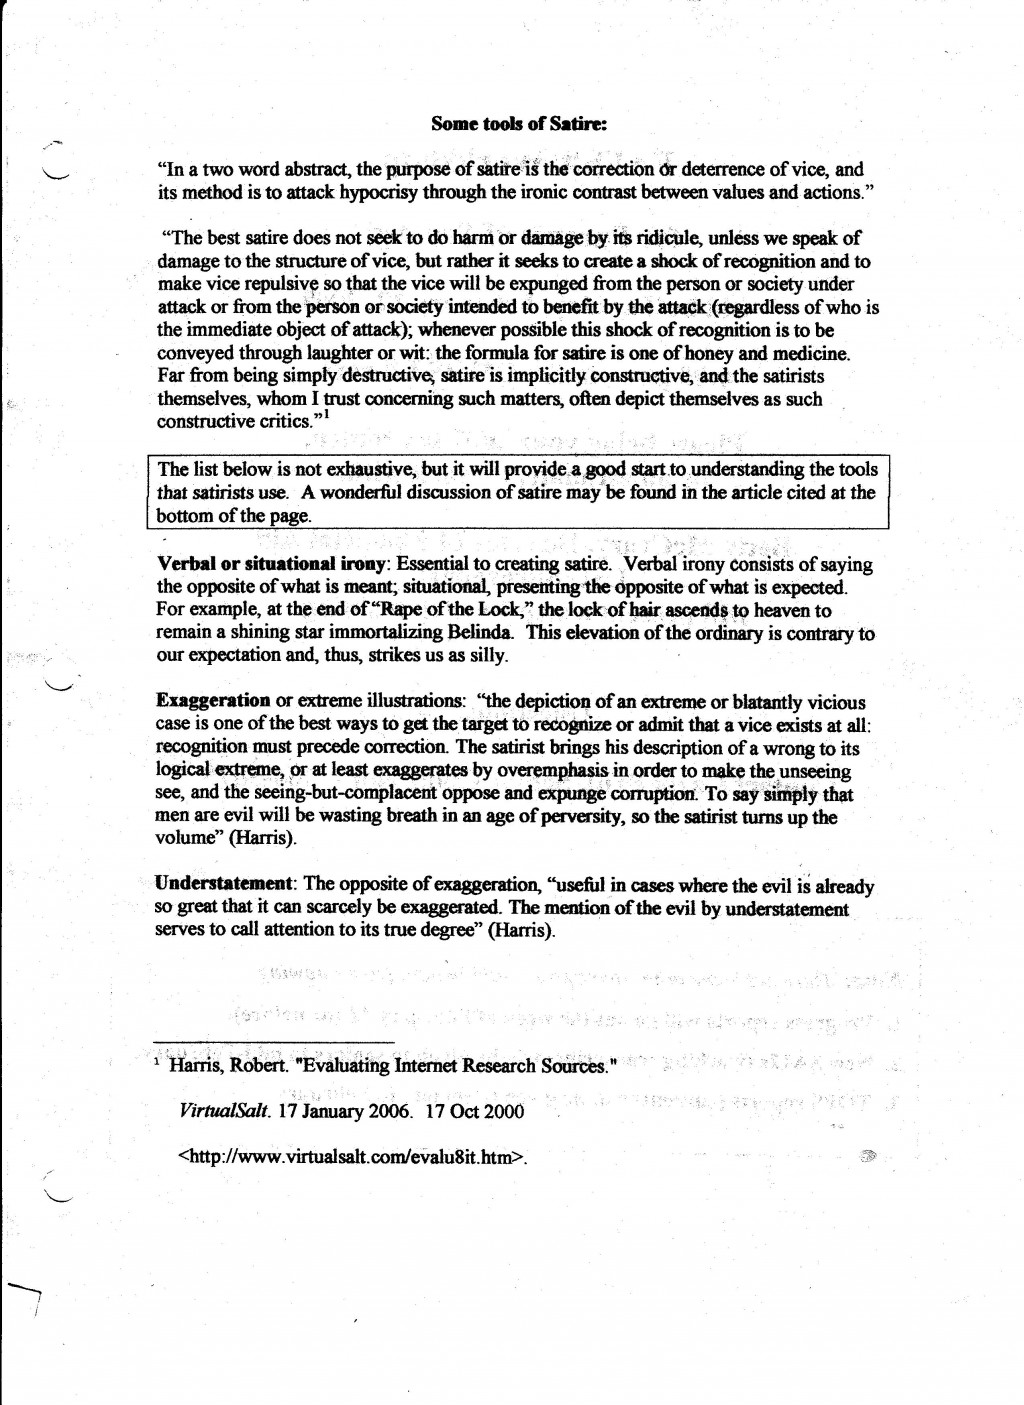 009 Writing Satirical Essay How Write Satire Handout Topics For Essays Top A Examples Of To On Sample Large